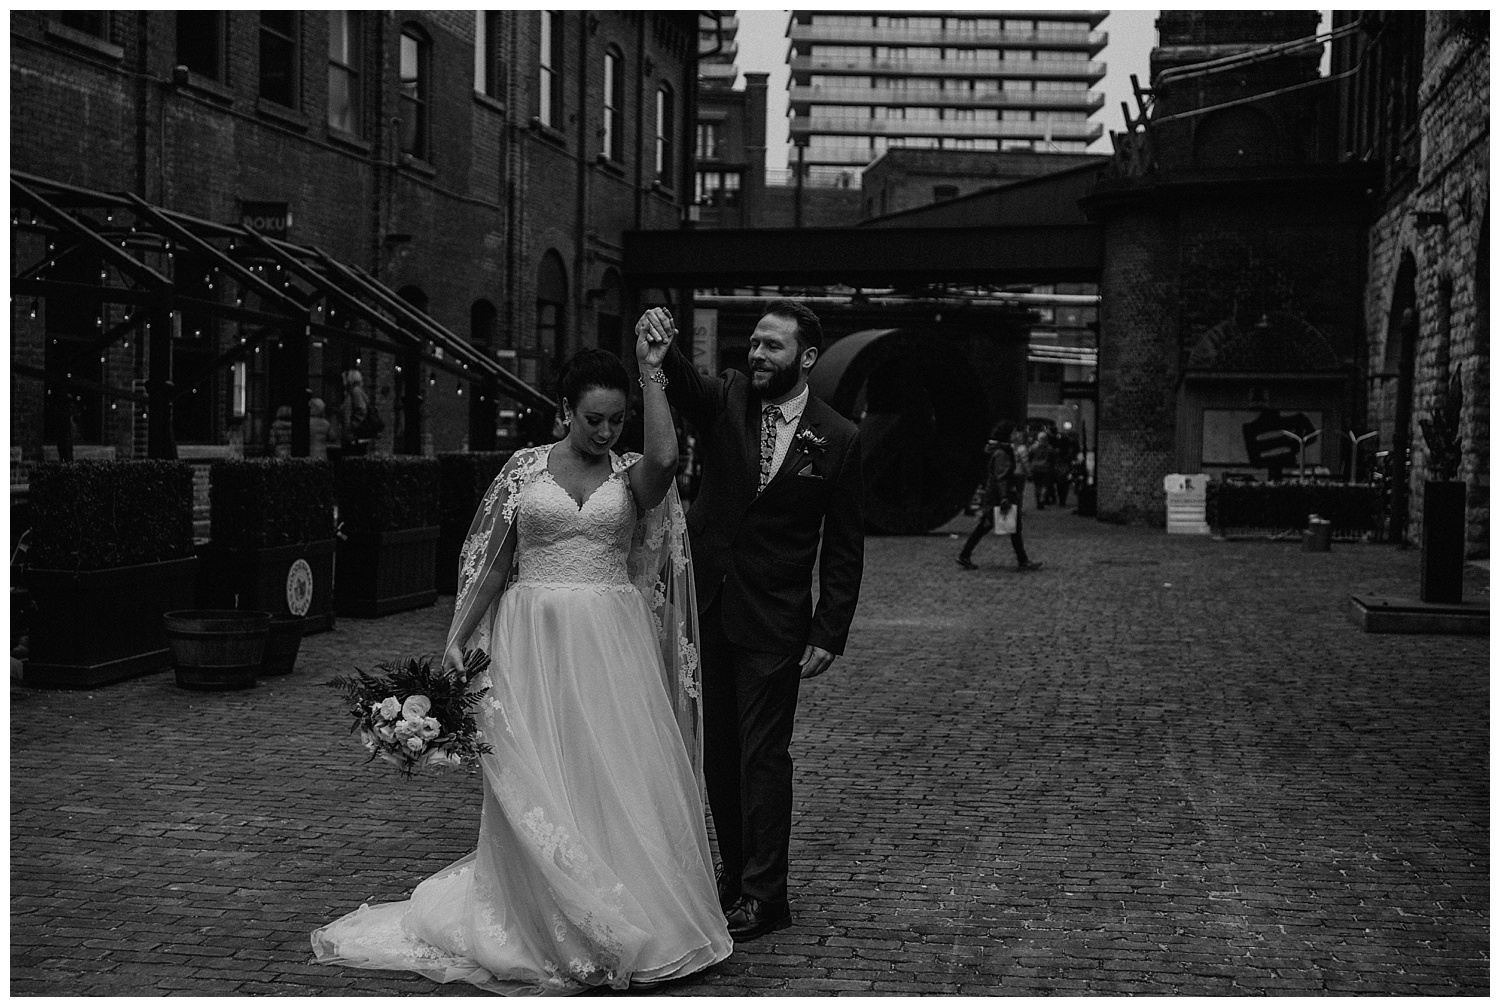 Katie Marie Photography | Archeo Wedding Arta Gallery Wedding | Distillery District Wedding | Toronto Wedding Photographer | Hamilton Toronto Ontario Wedding Photographer |_0031.jpg